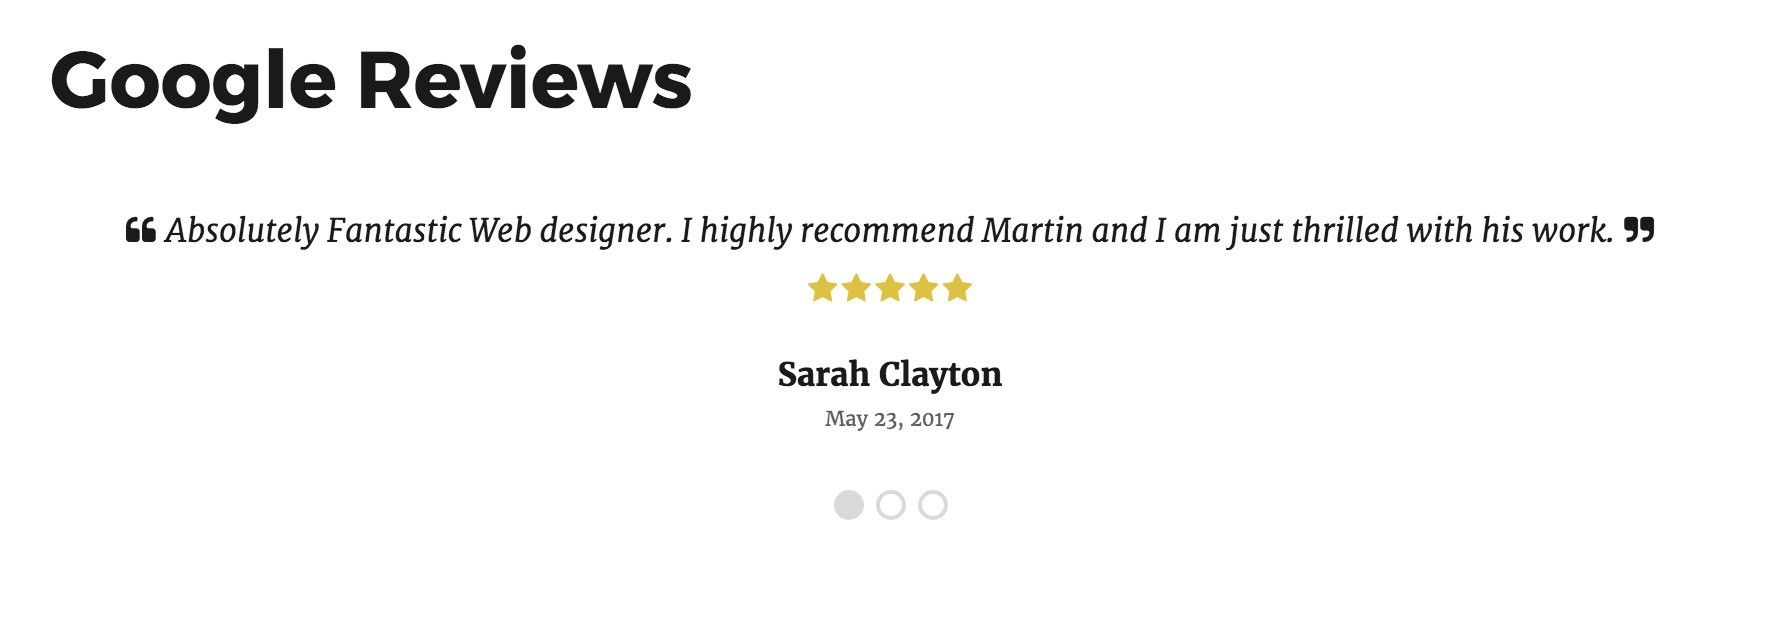 An example of the reviews display on the frontend